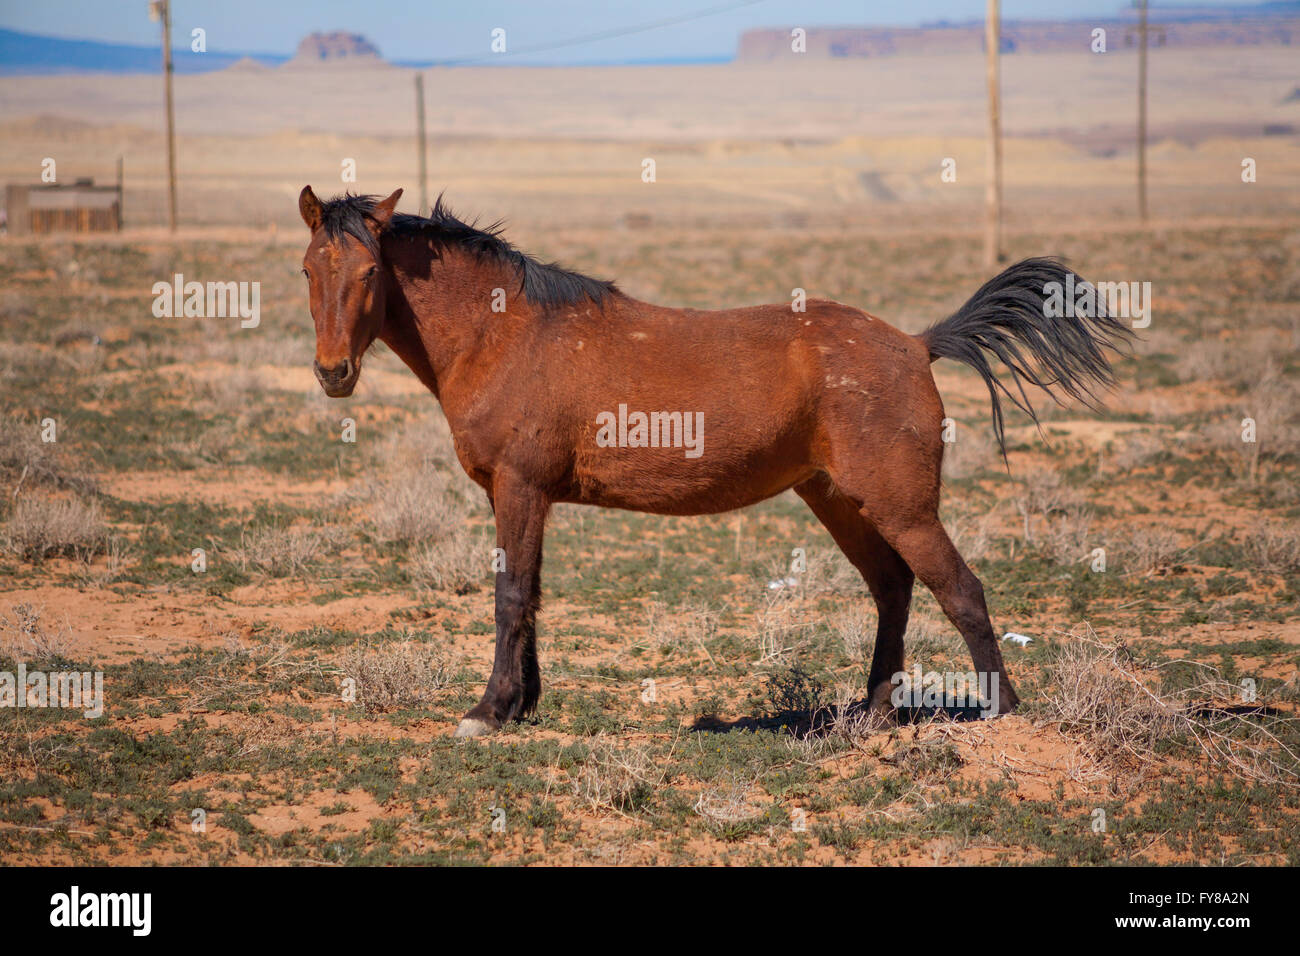 A female (mare) horse (Equus ferus caballus) posing with her tail raised in the desert. Shiprock, San Juan County, Stock Photo